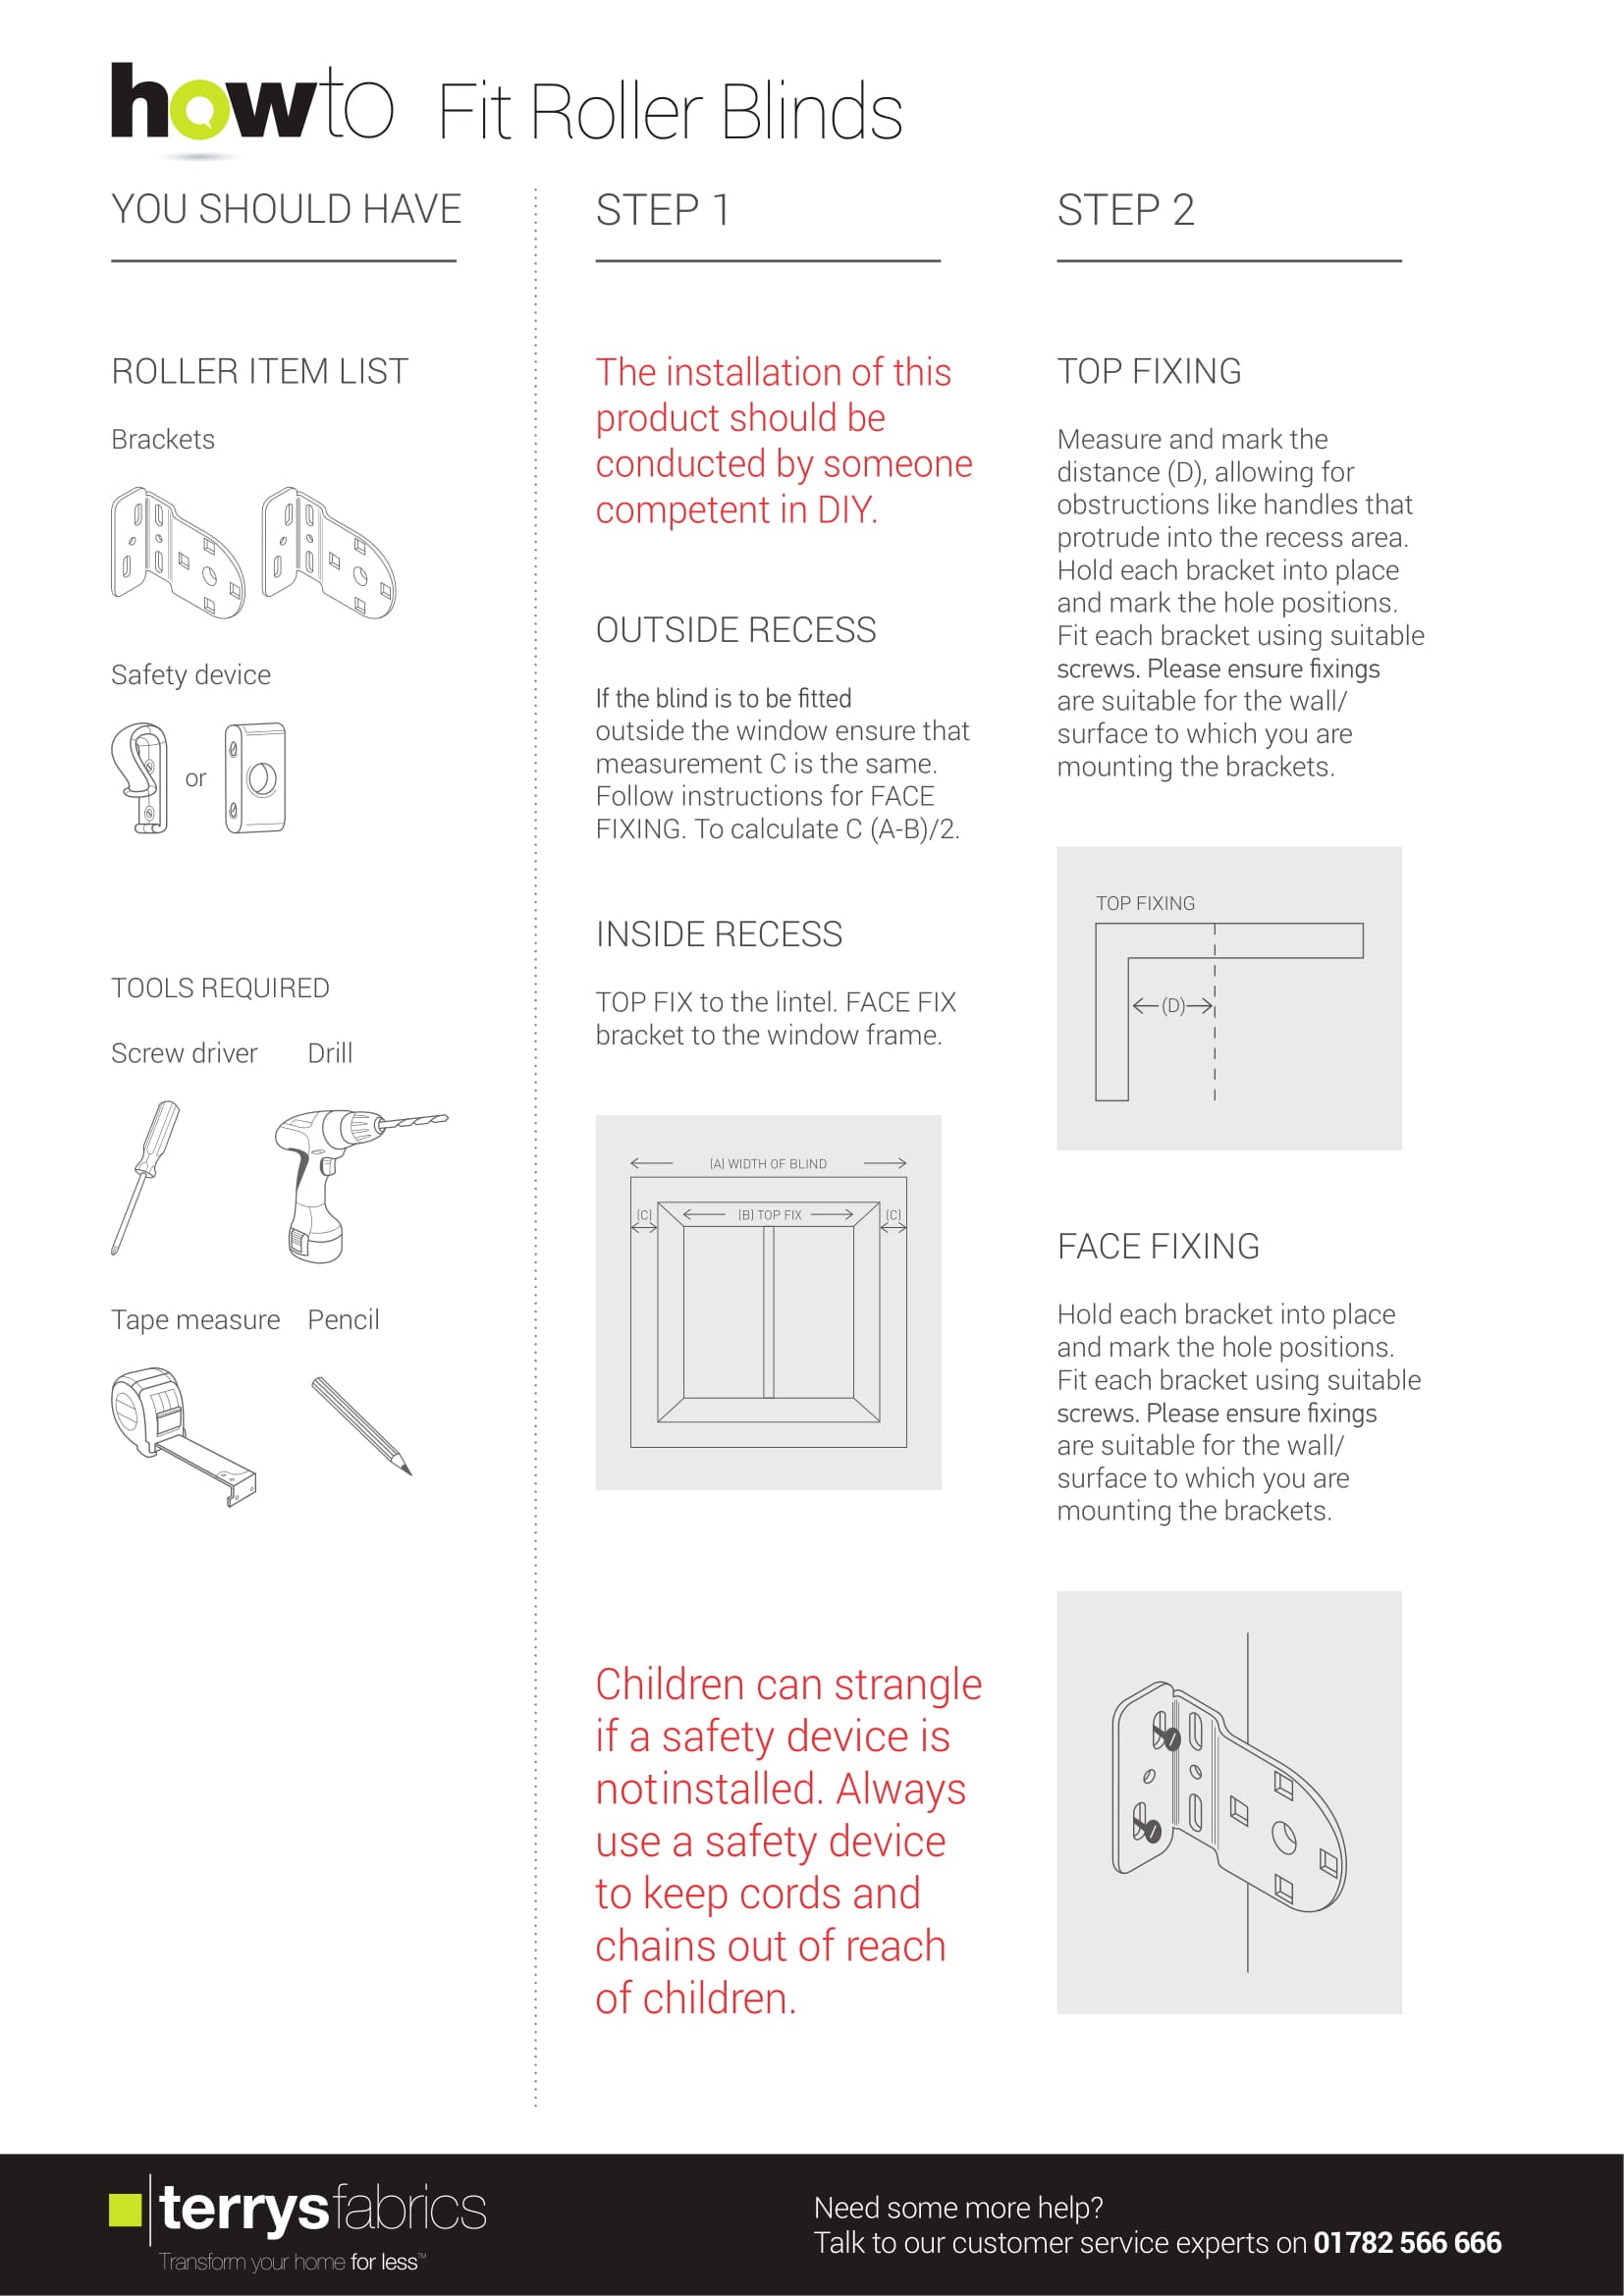 Roller Blind Fitting Instructions Two